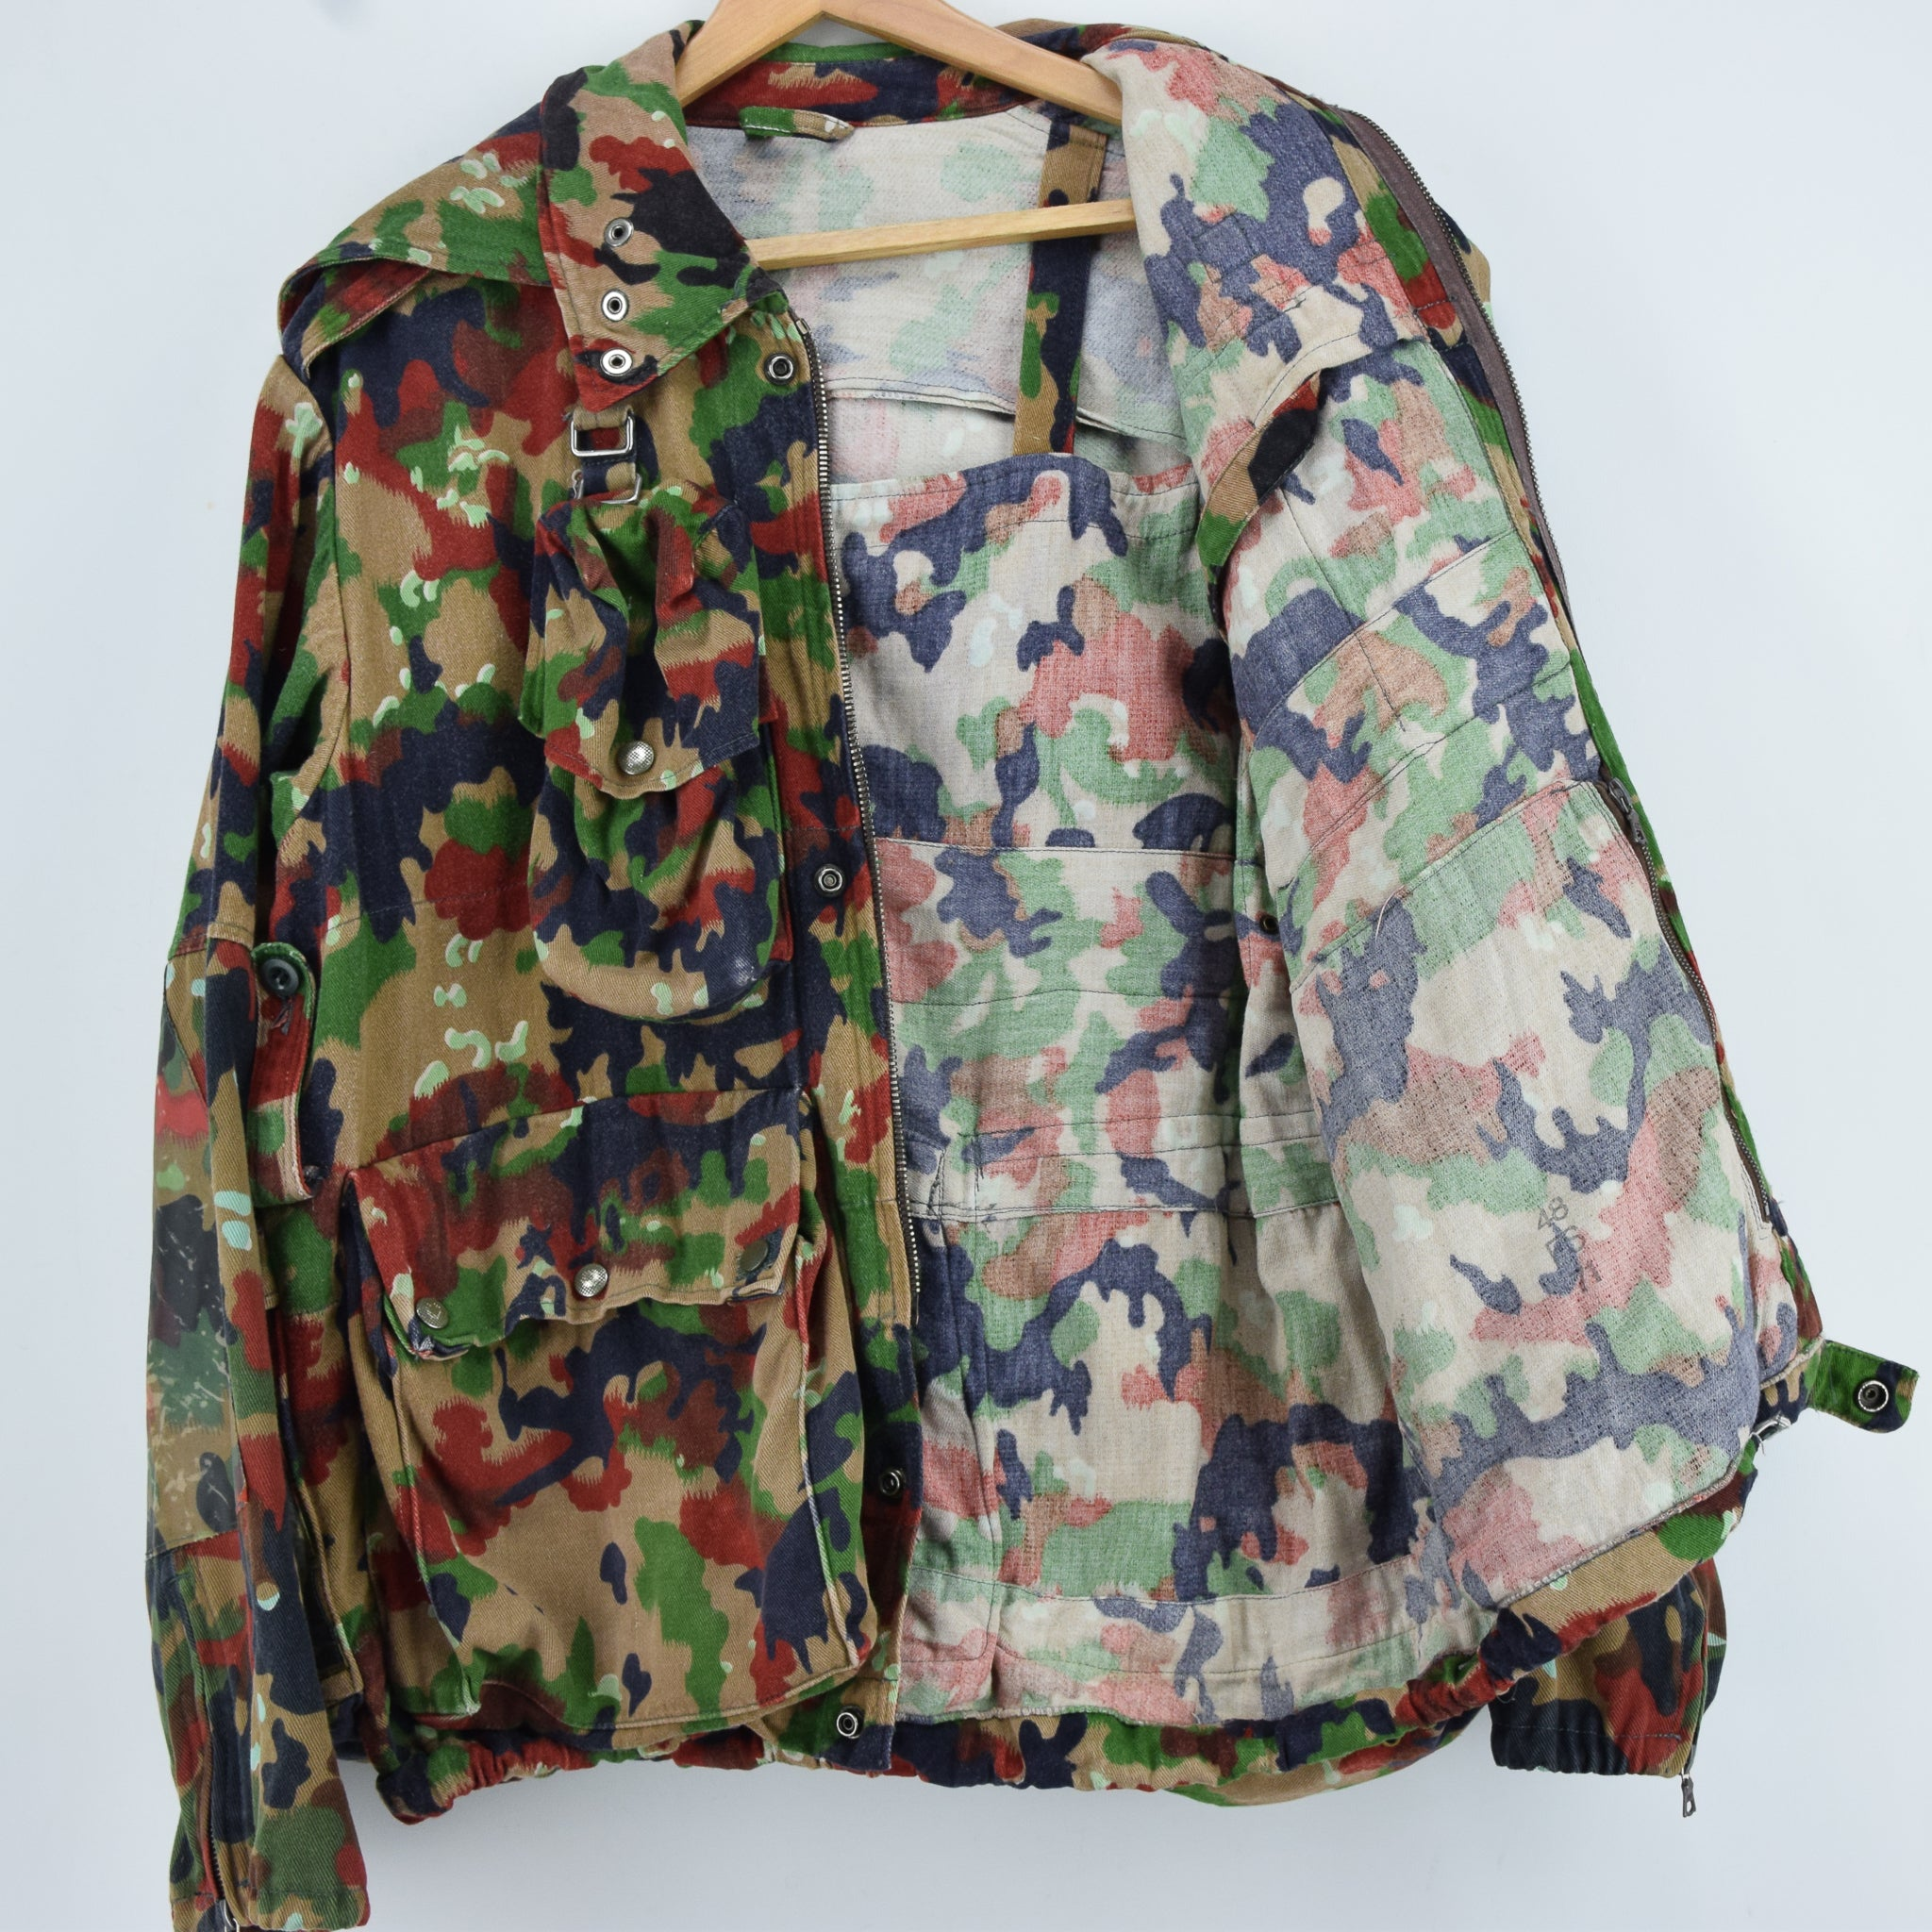 Vintage 70s Swiss Army Alpenflage Camo Sniper Combat Field Jacket S / M lining